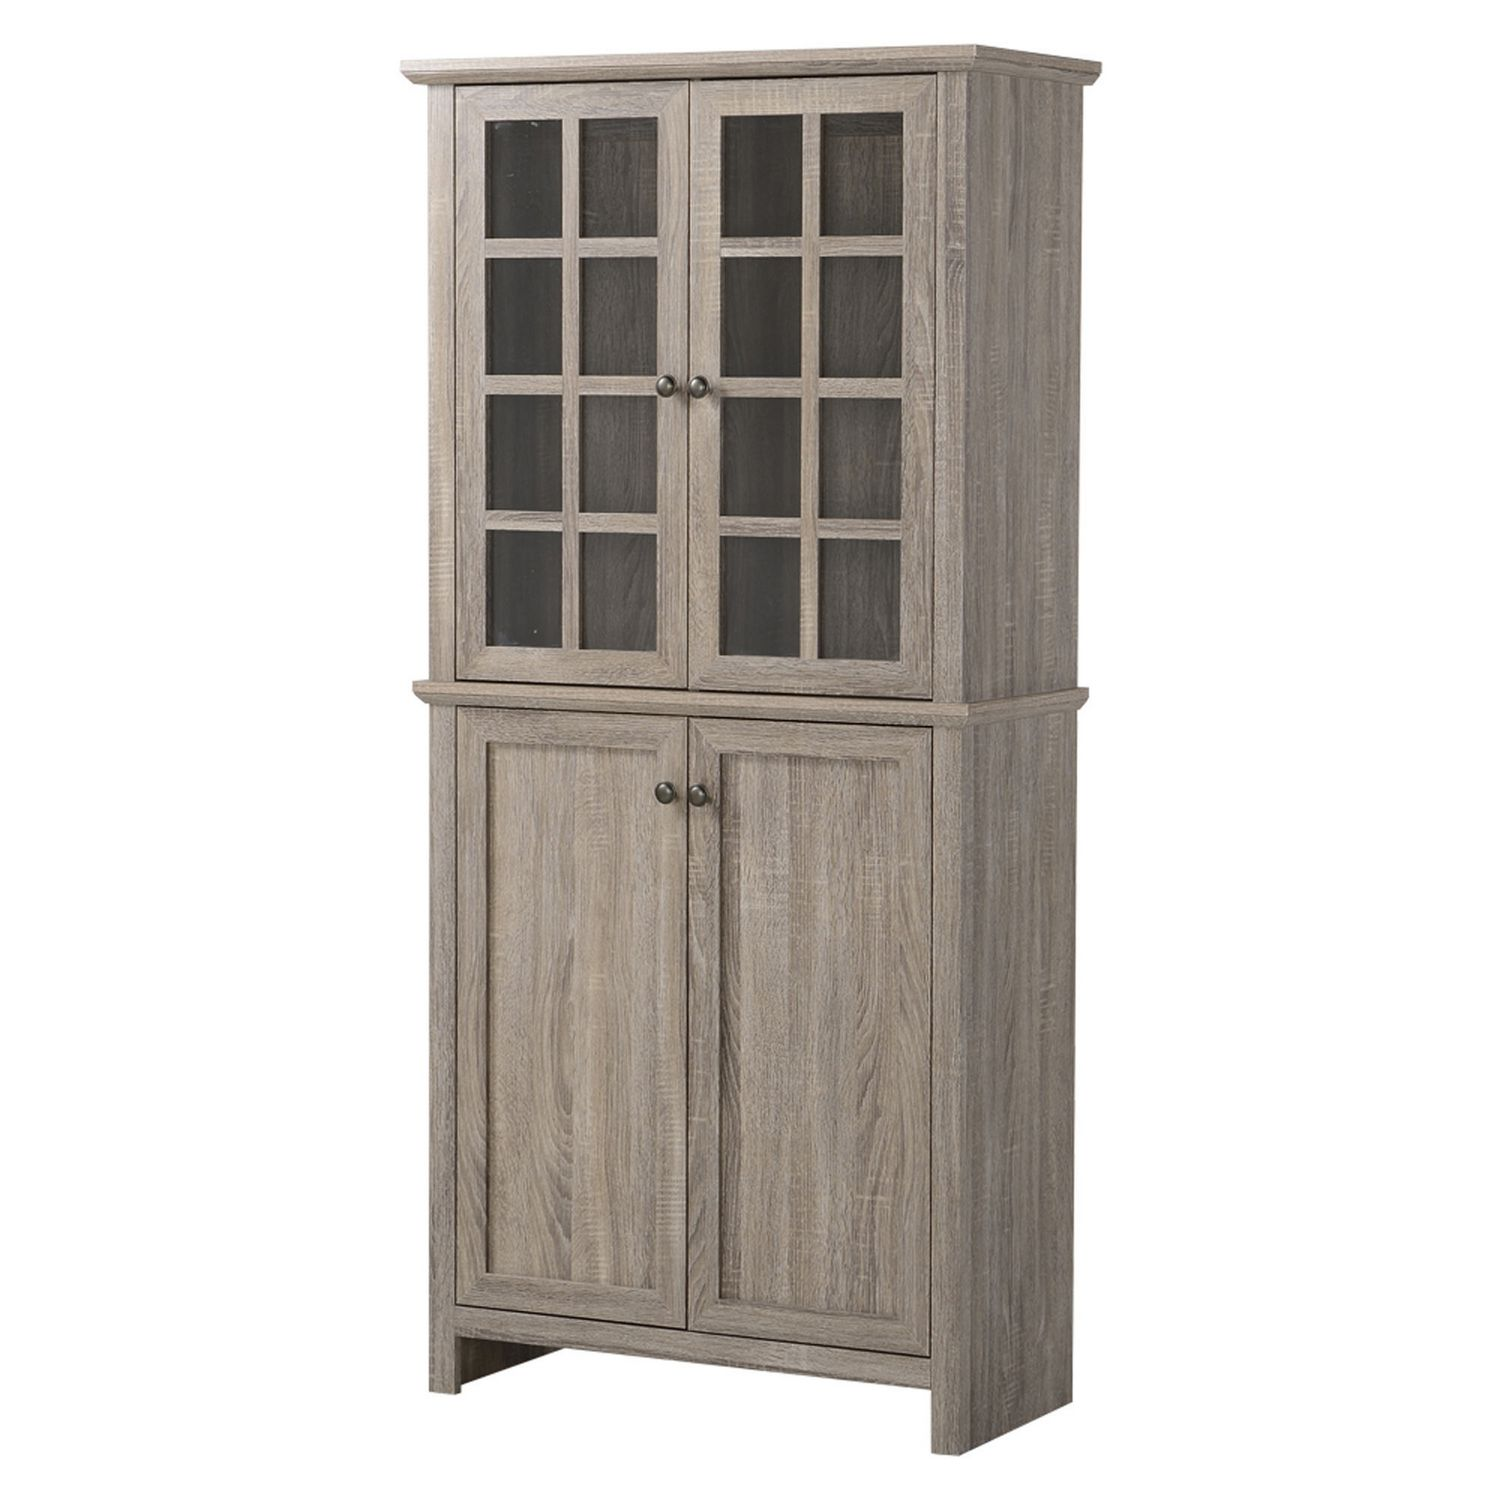 Homestar 2 Door Glass Storage Cabinet in Reclaimed Wood | Walmart ...